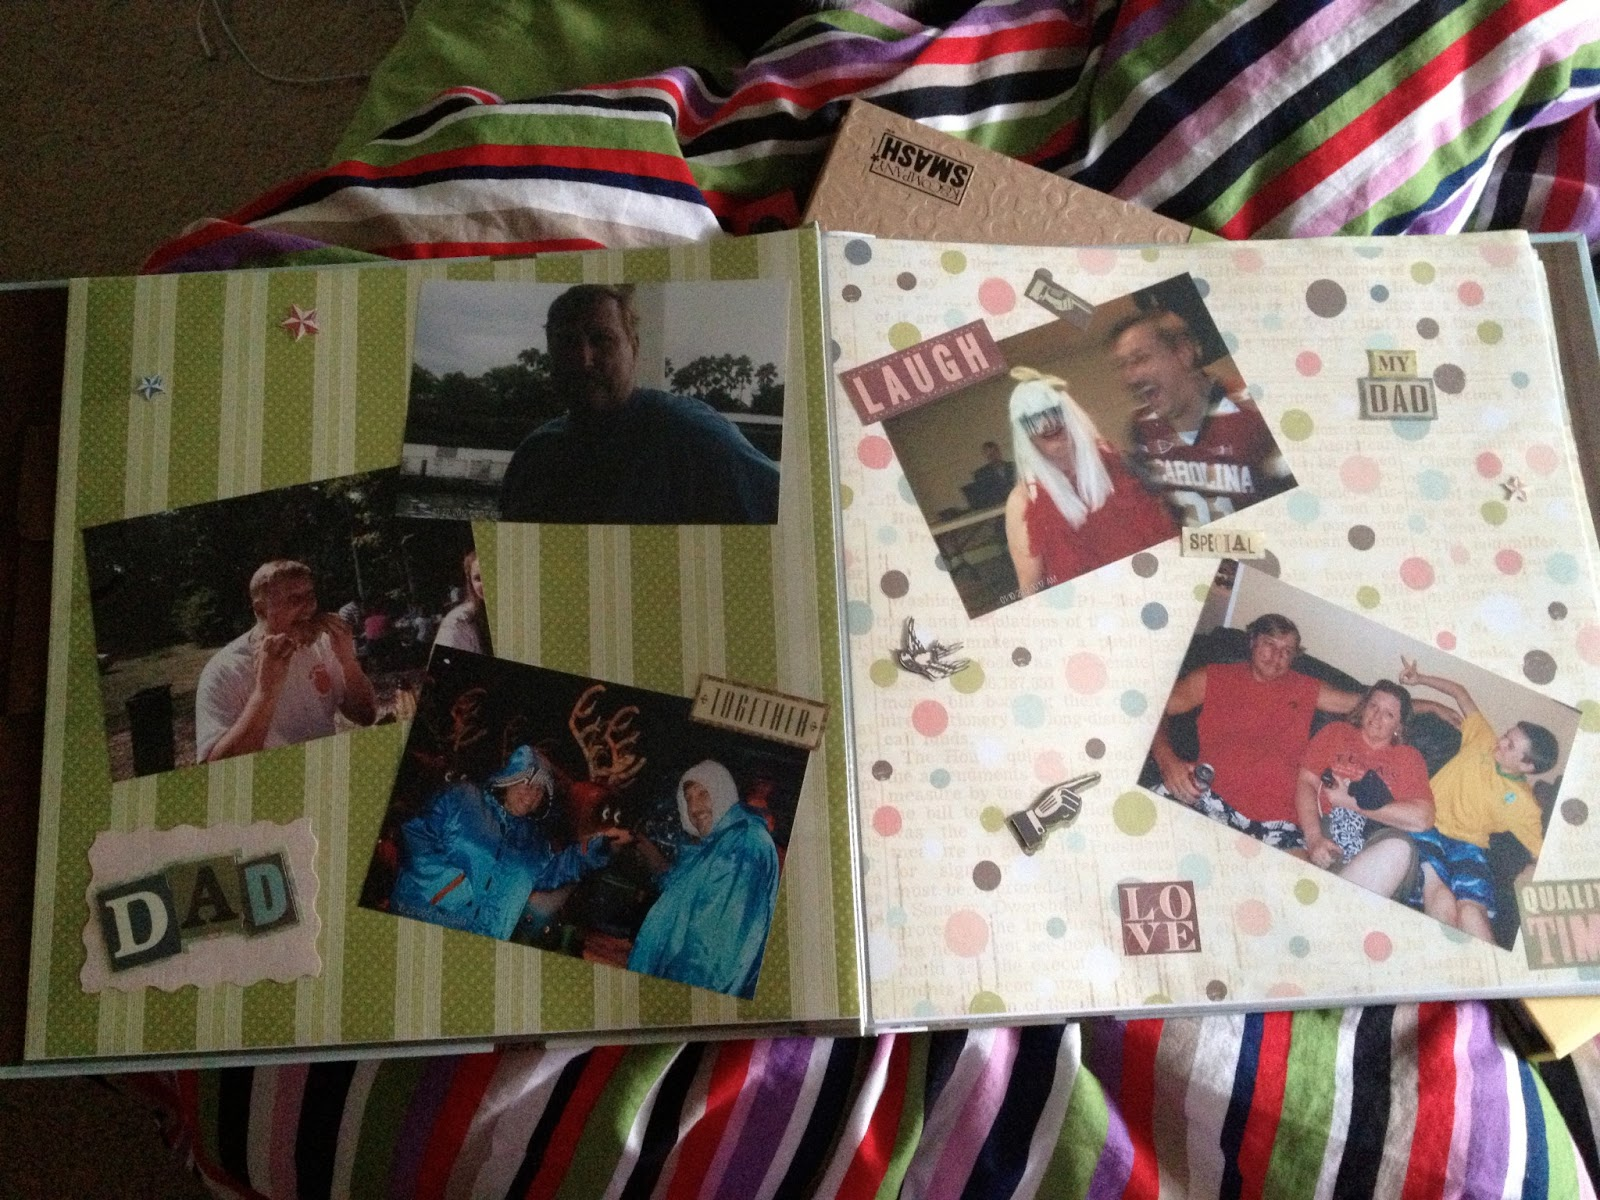 How to make scrapbook look good - You Can Scrapbook Without All Of Those Expensive Little Things But You Either Need The Stuff Or The Talent To Make It Look Good I Have Neither